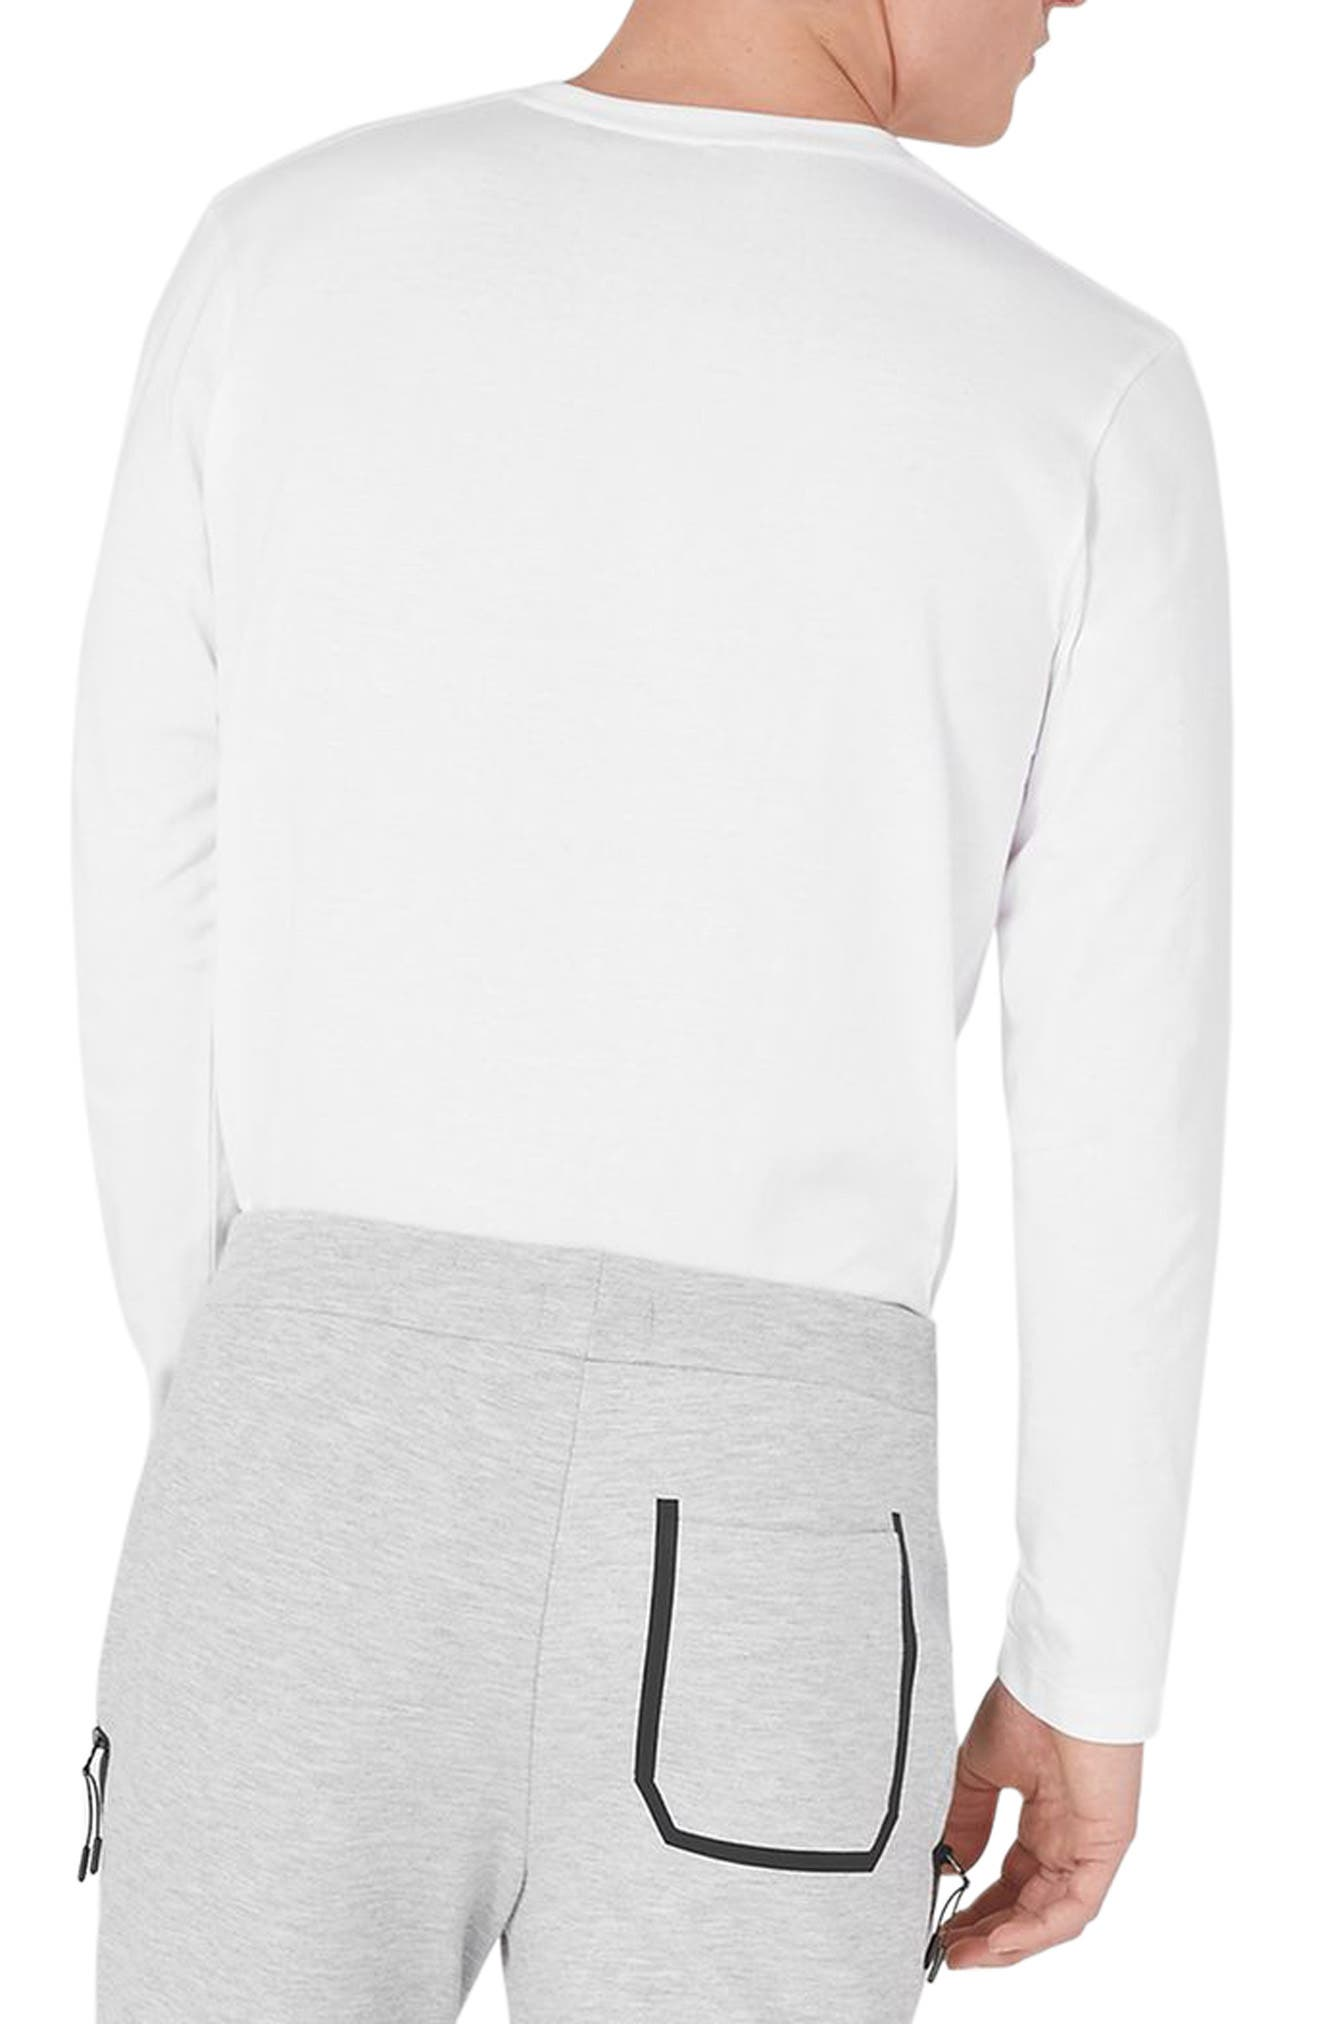 NICCE Graphic Long Sleeve T-Shirt,                             Alternate thumbnail 2, color,                             100